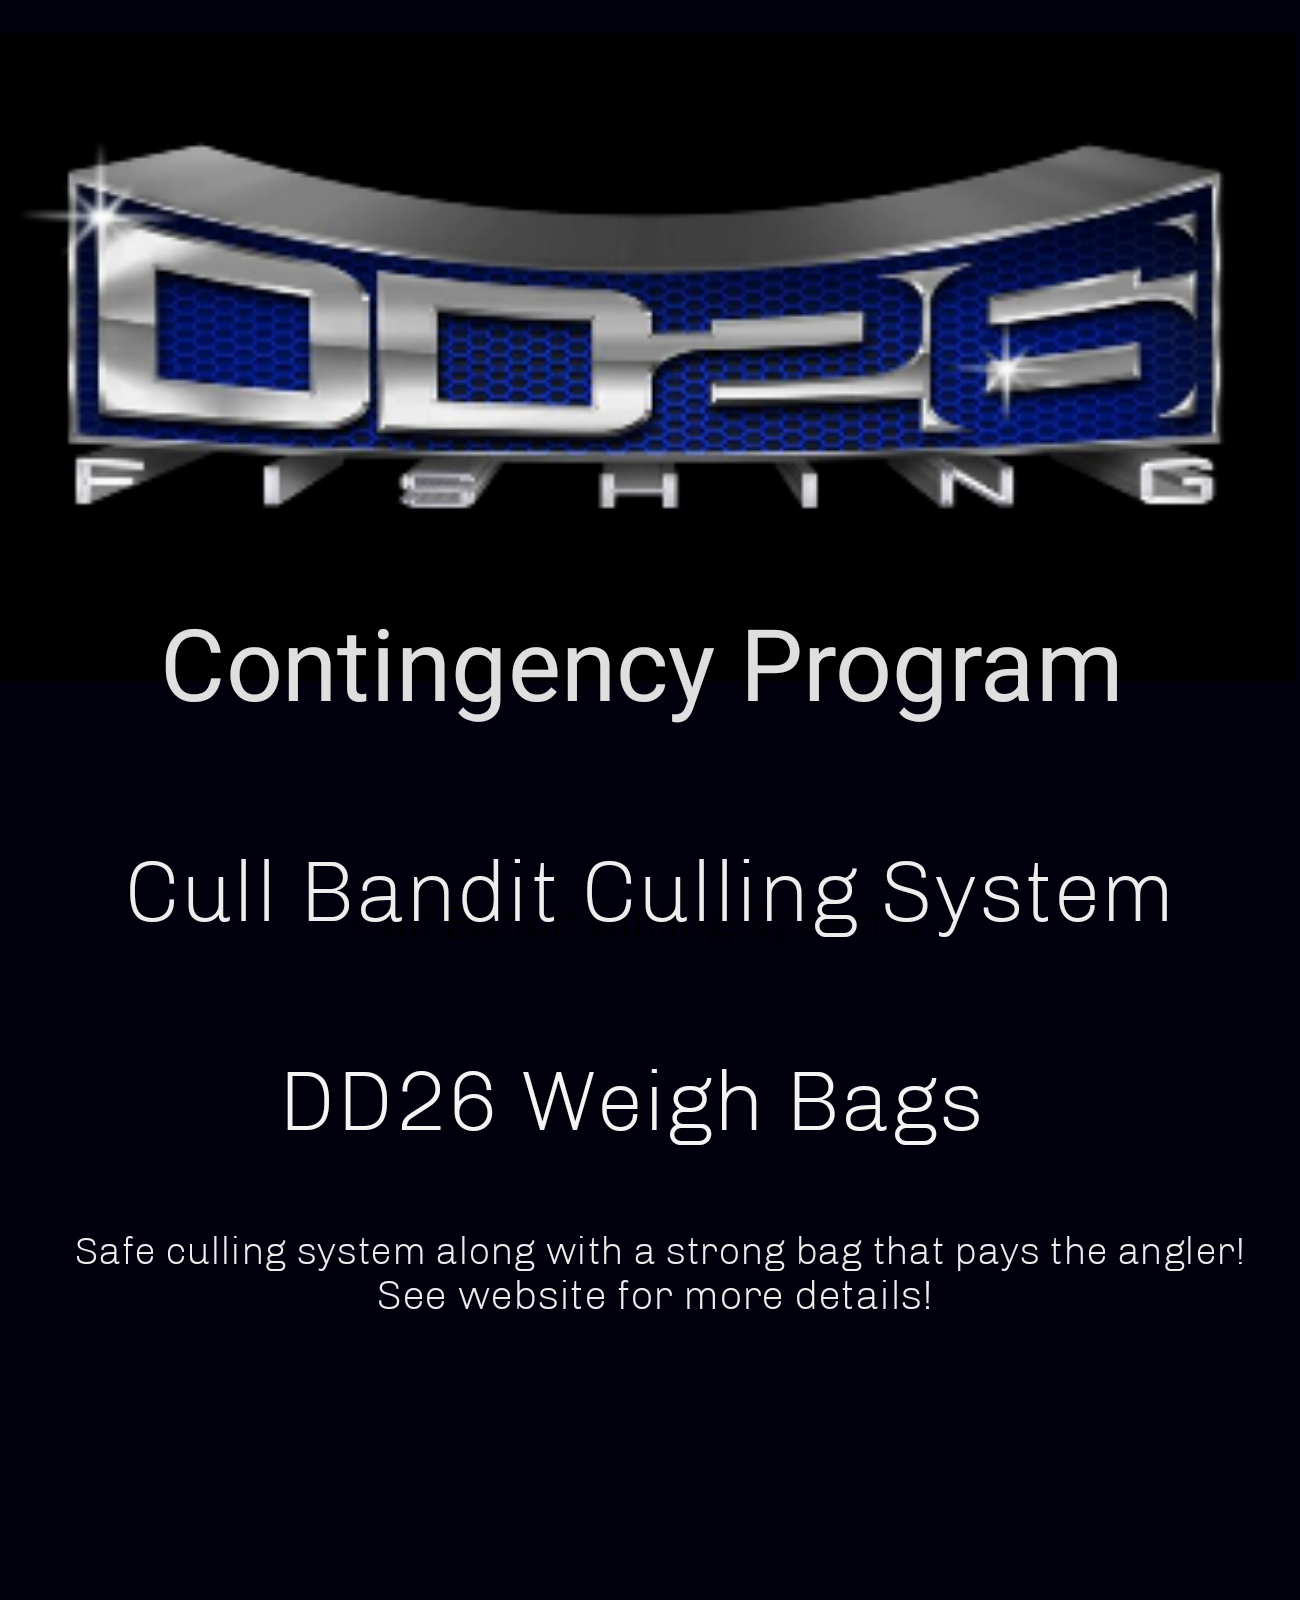 DD26 Contingency Banner